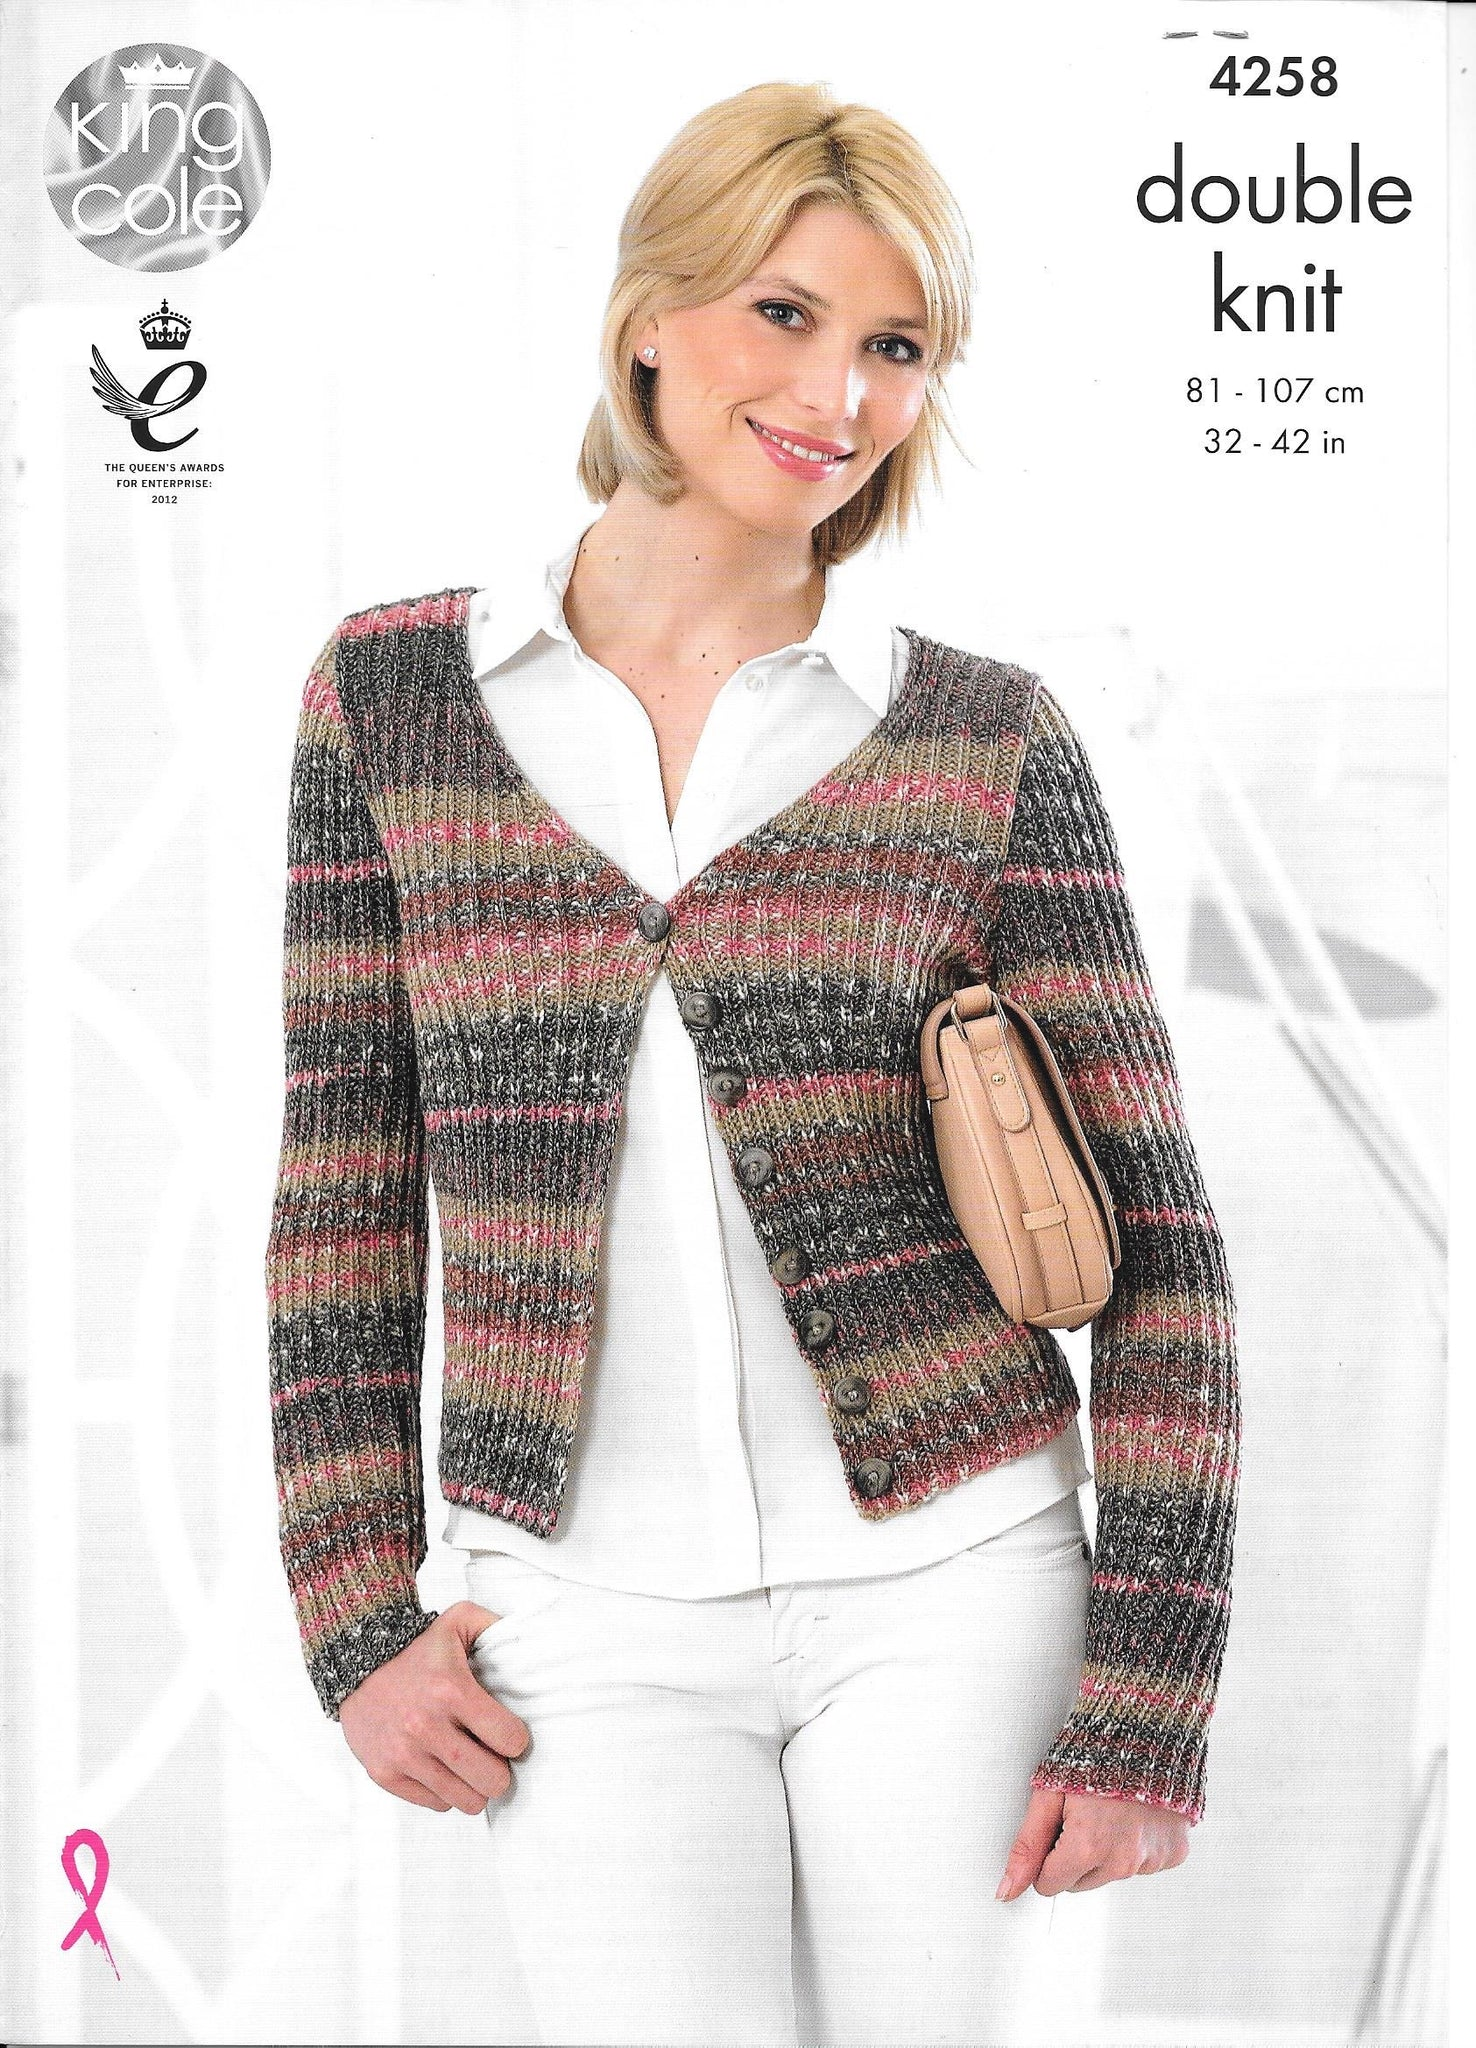 4258 King Cole Drifter double knit ladies cardigan and sweater knitting pattern